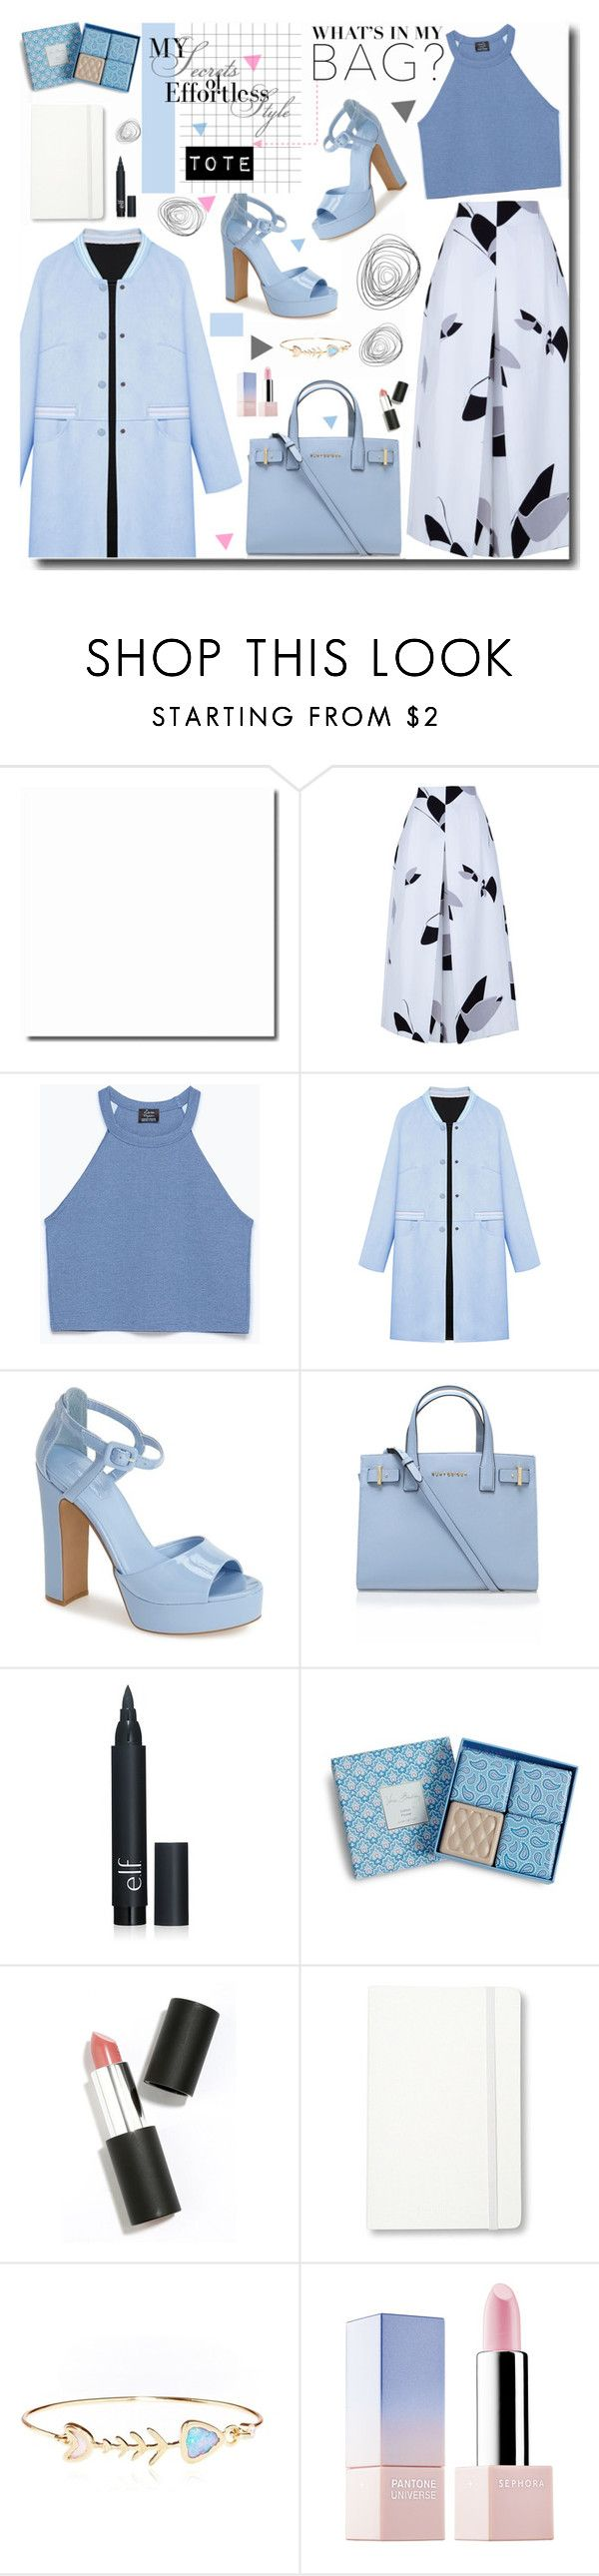 """Tote Bag"" by kts-desilva ❤ liked on Polyvore featuring TIBI, Zara, WithChic, Topshop, Kurt Geiger, Vera Bradley, Sigma Beauty, Moleskine, Sephora Collection and women's clothing"